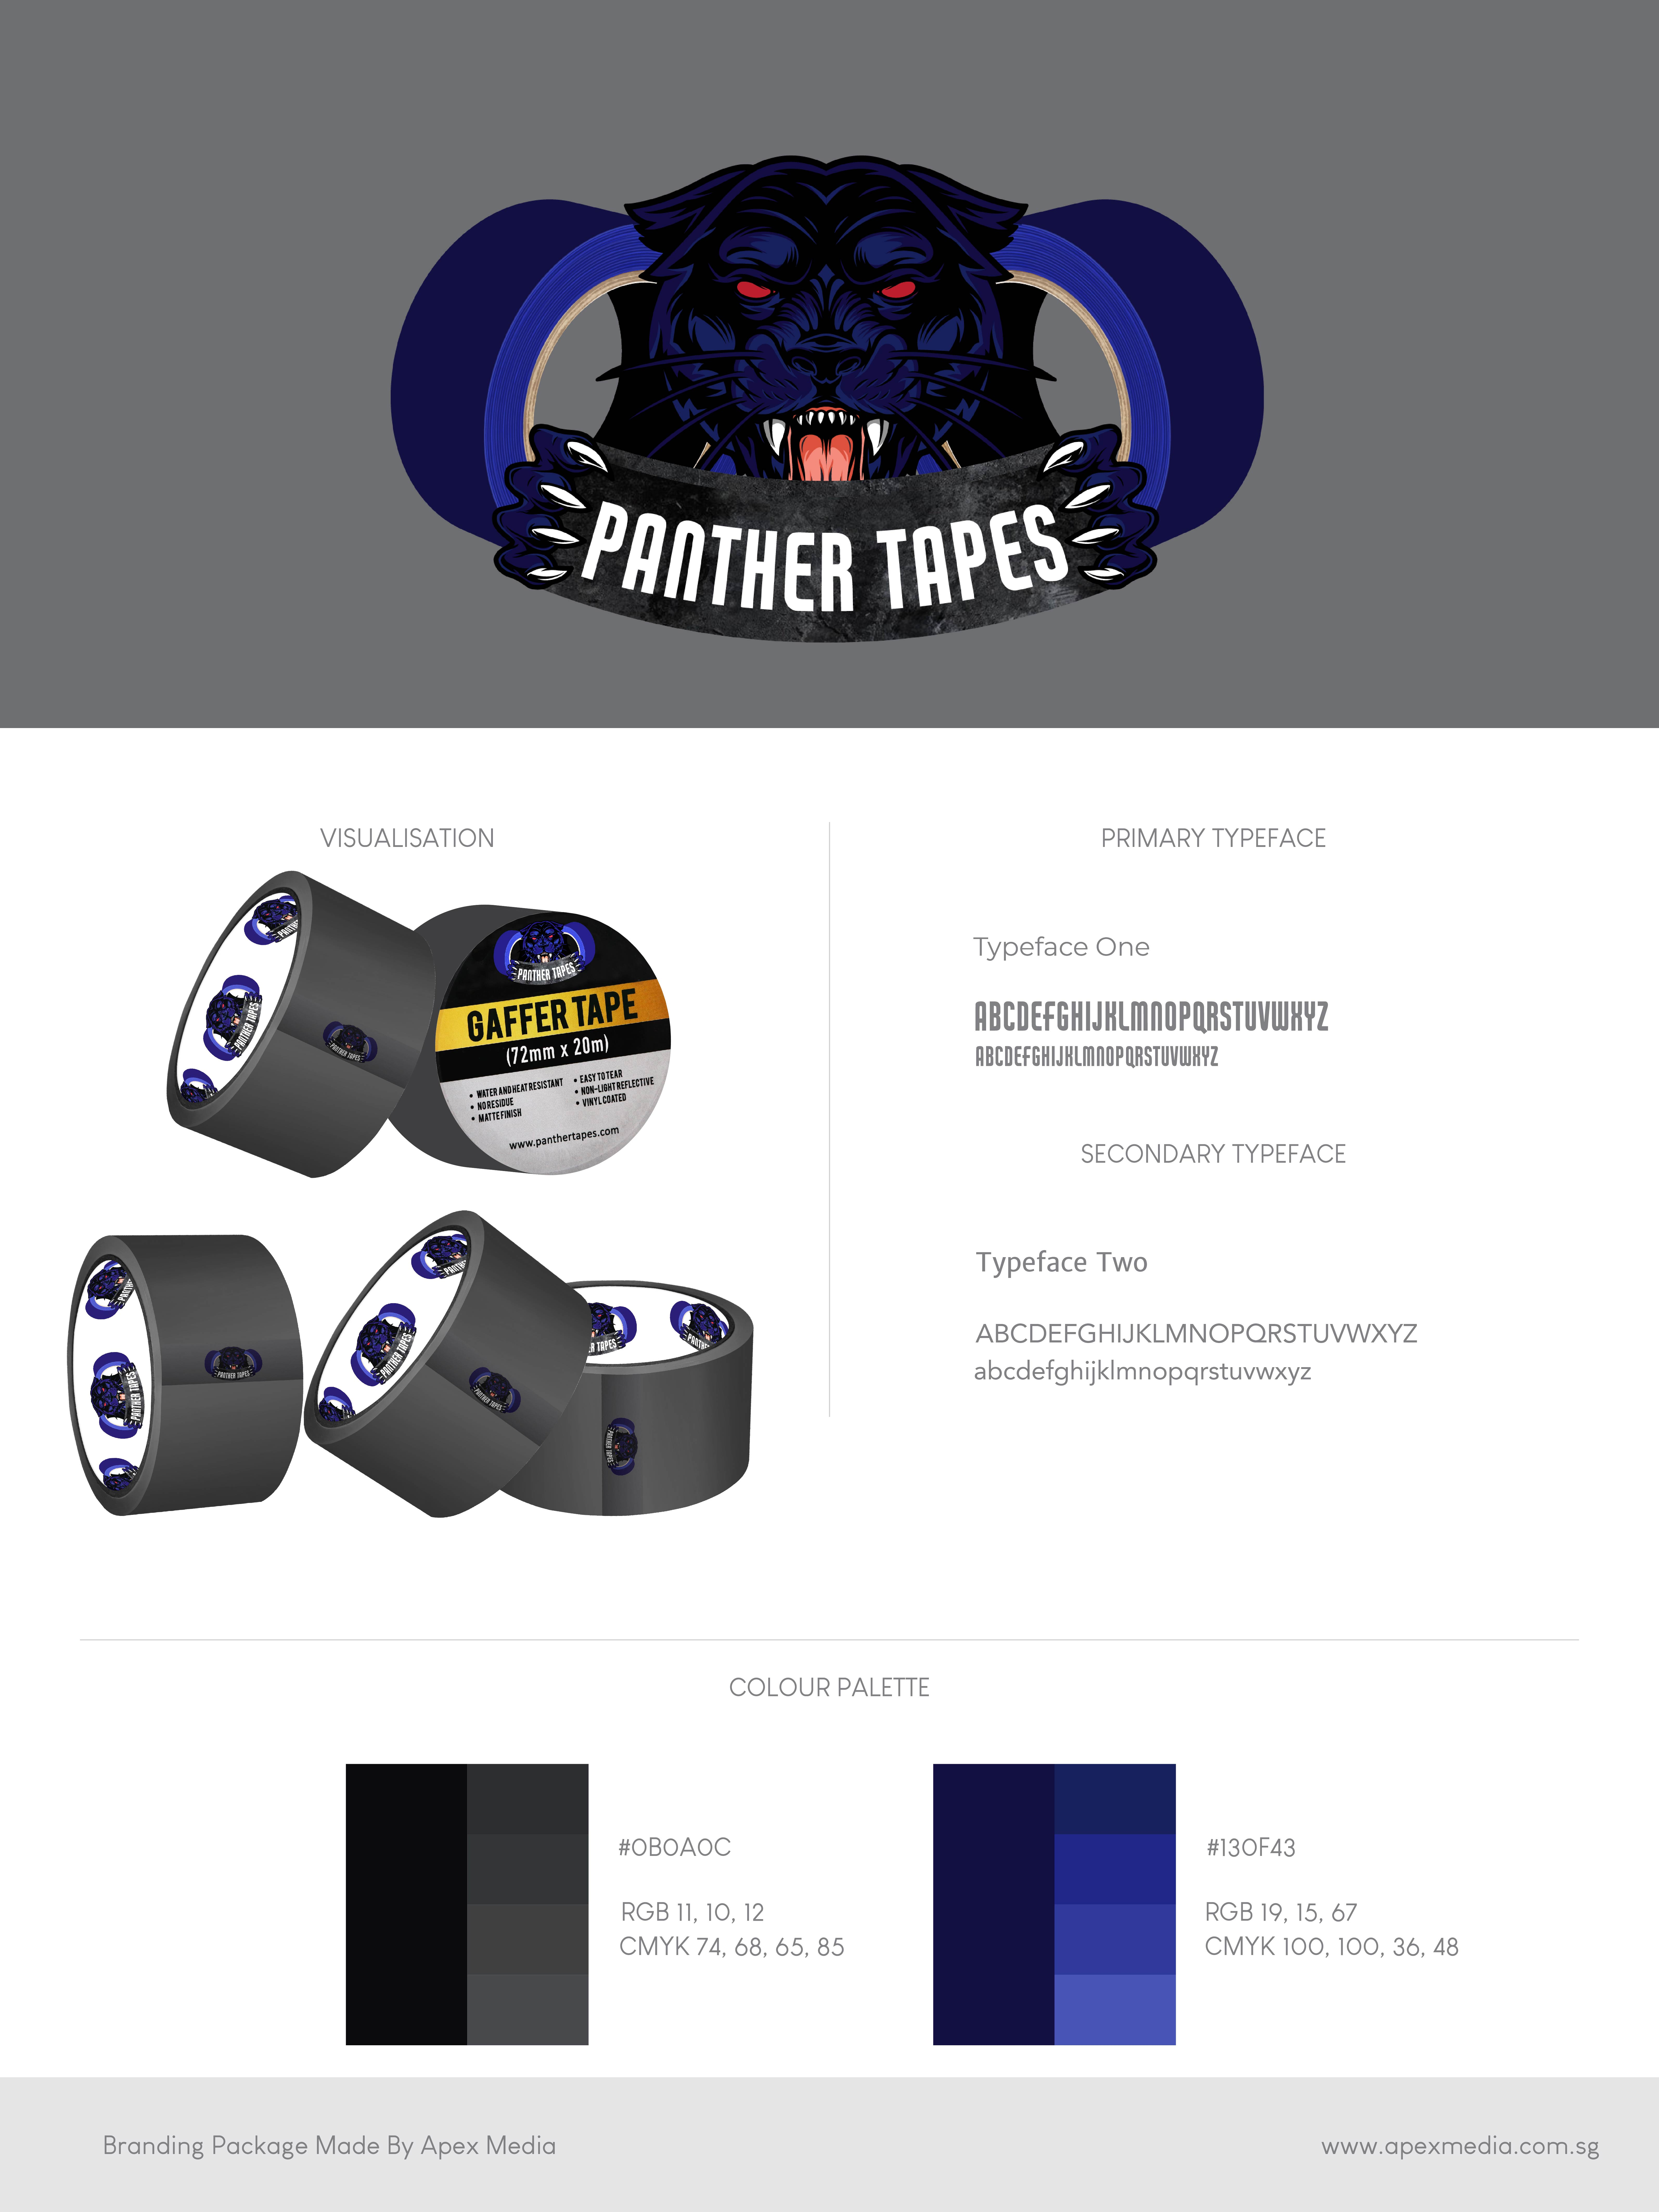 Panther Tapes Branding Identity